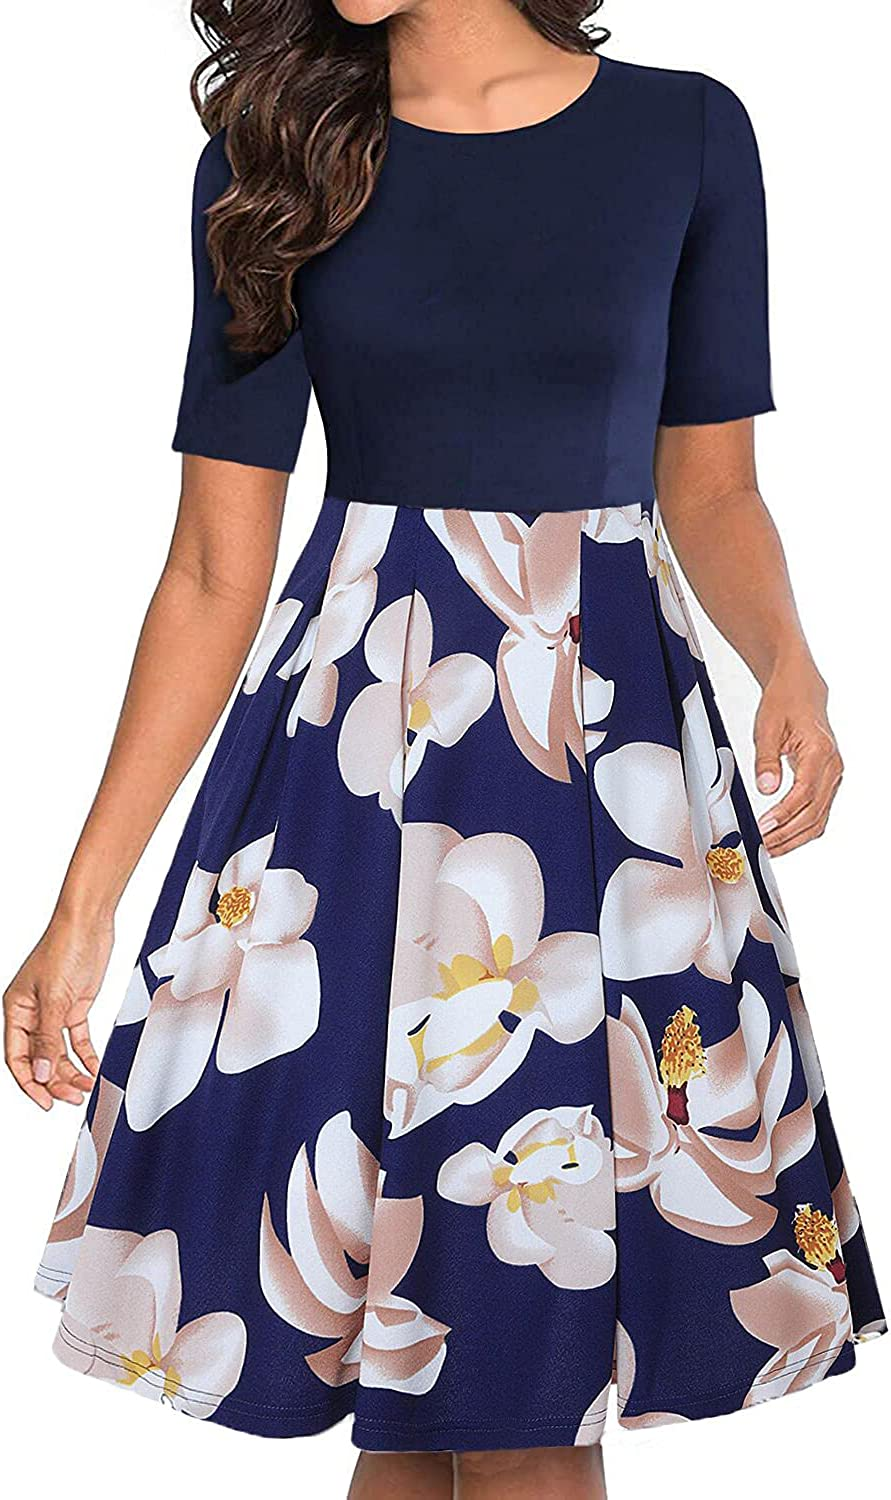 Women's Vintage Zip Floral Patchwork Cocktail Puffy Swing Casual Party Dress with Pockets